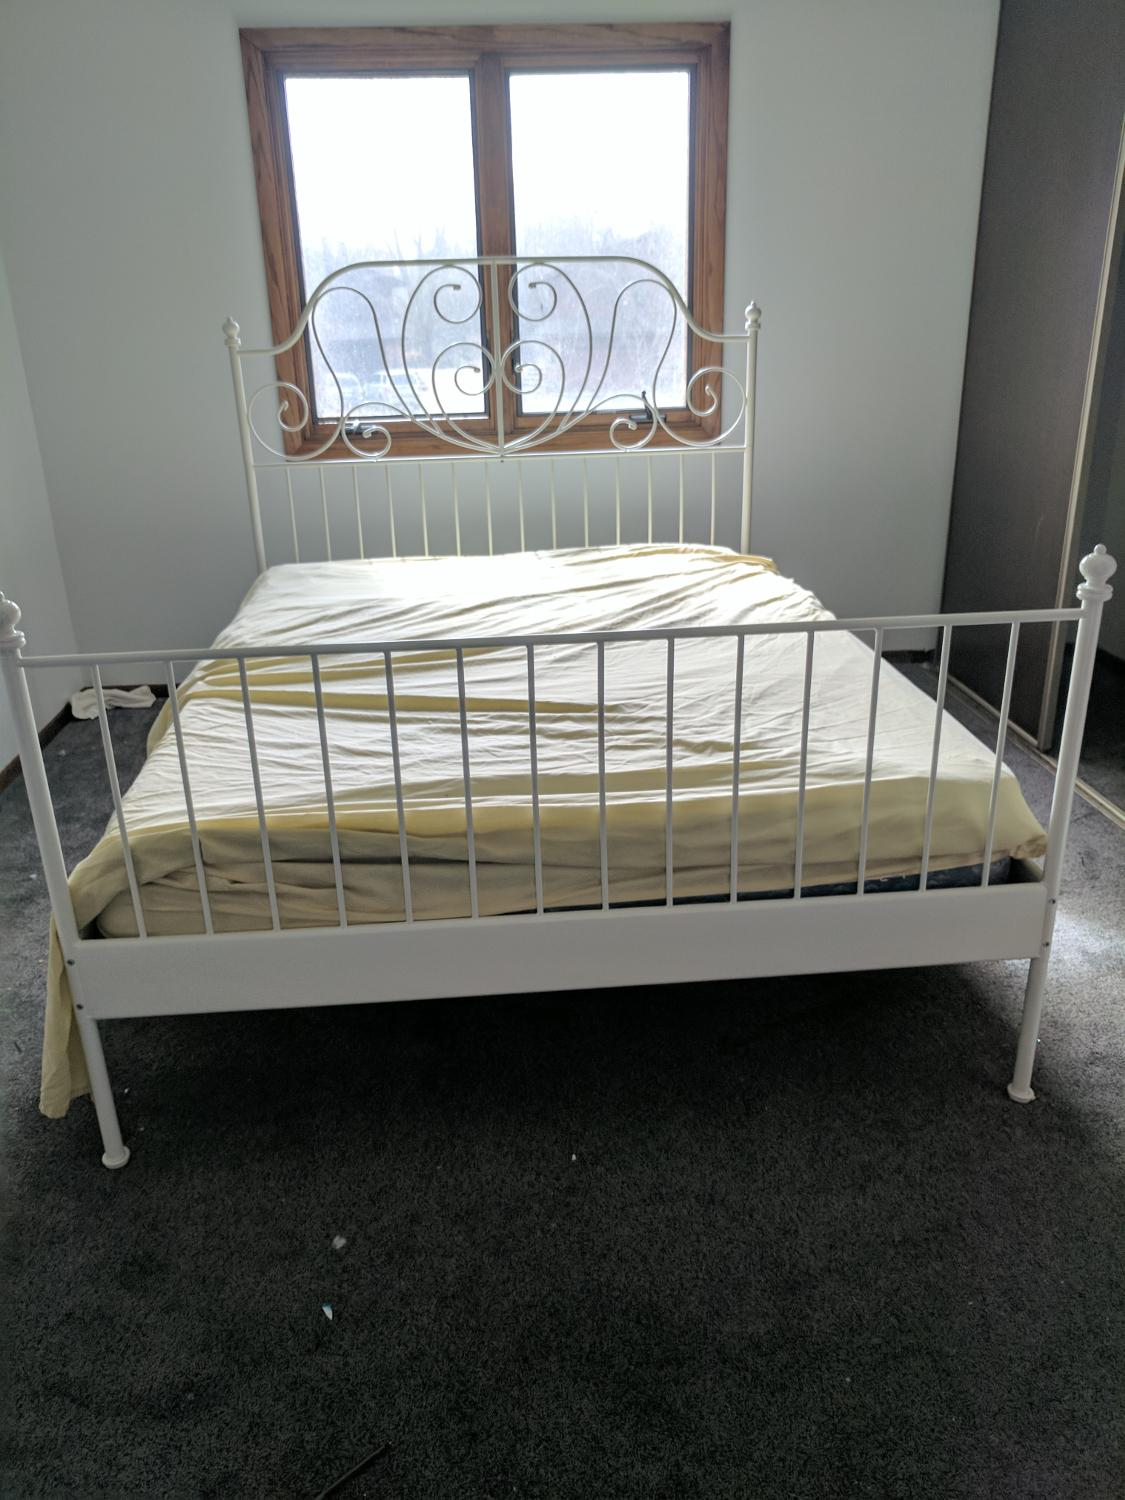 Best Queen Ikea Metal Bed Frame For Sale In Brooklyn Park Minnesota For 2018